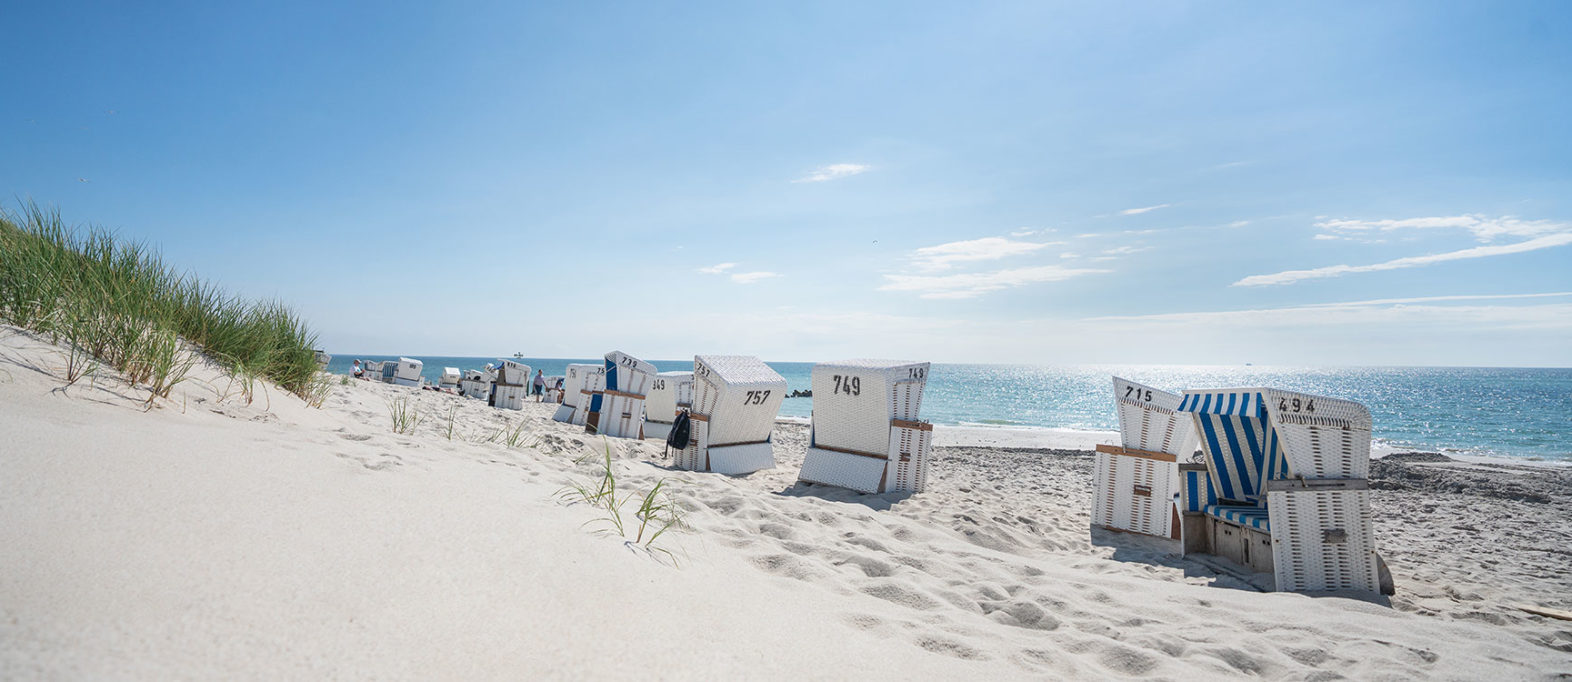 wetter sylt 14 tage